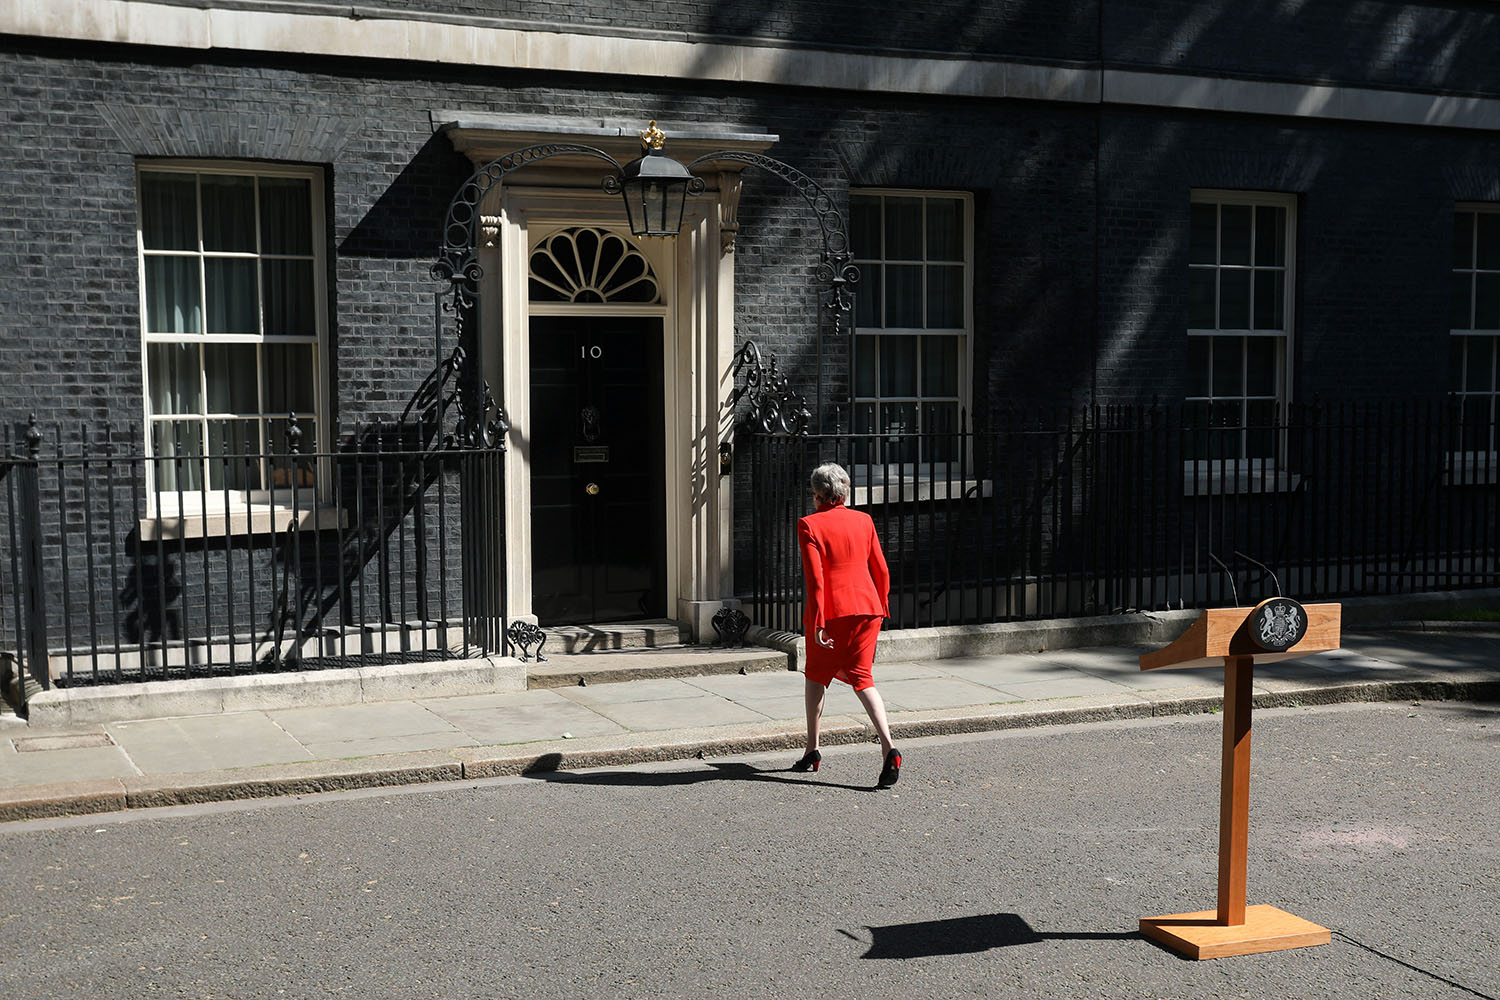 Theresa May leaves after announcing her resignation as Britain's prime minister outside 10 Downing Street in London on May 24. ISABEL INFANTES/AFP via Getty Images